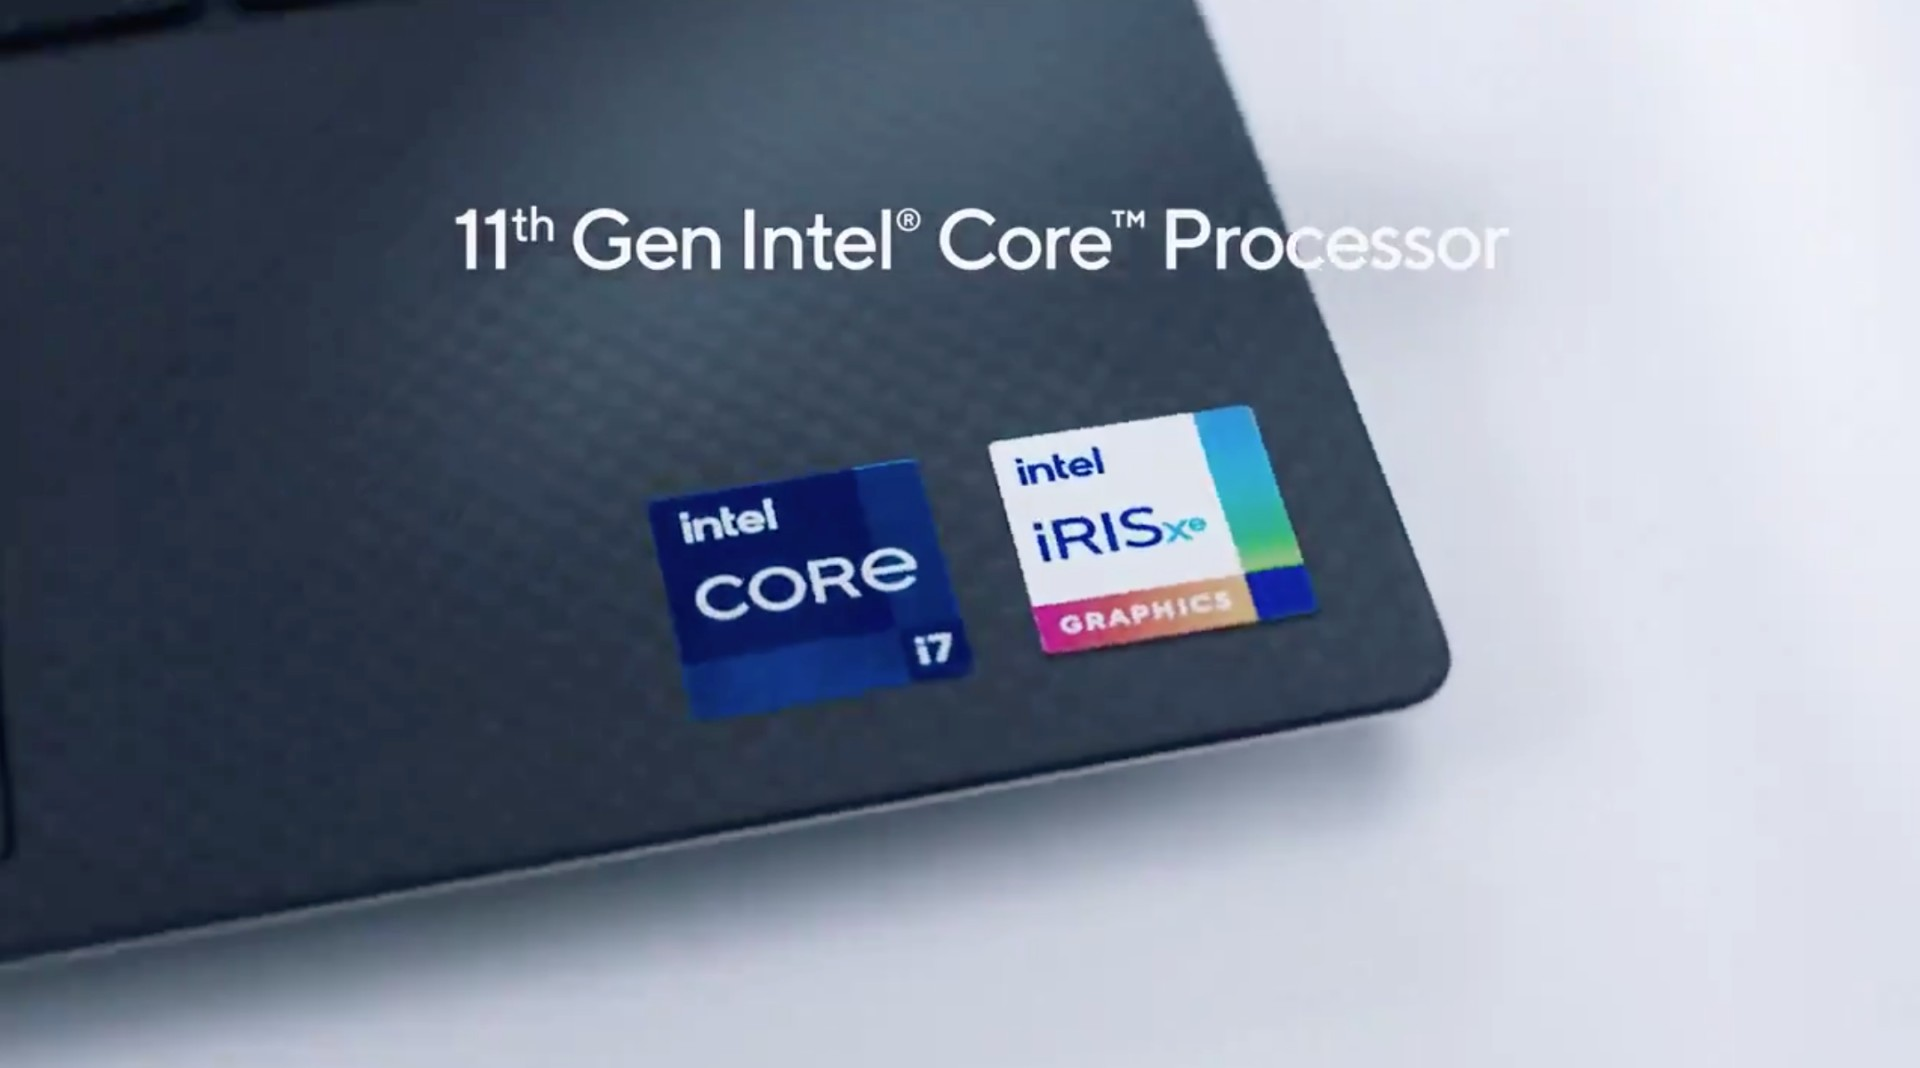 Intel Tiger Lake Promo Videos Leaked Ahead of Launch 4